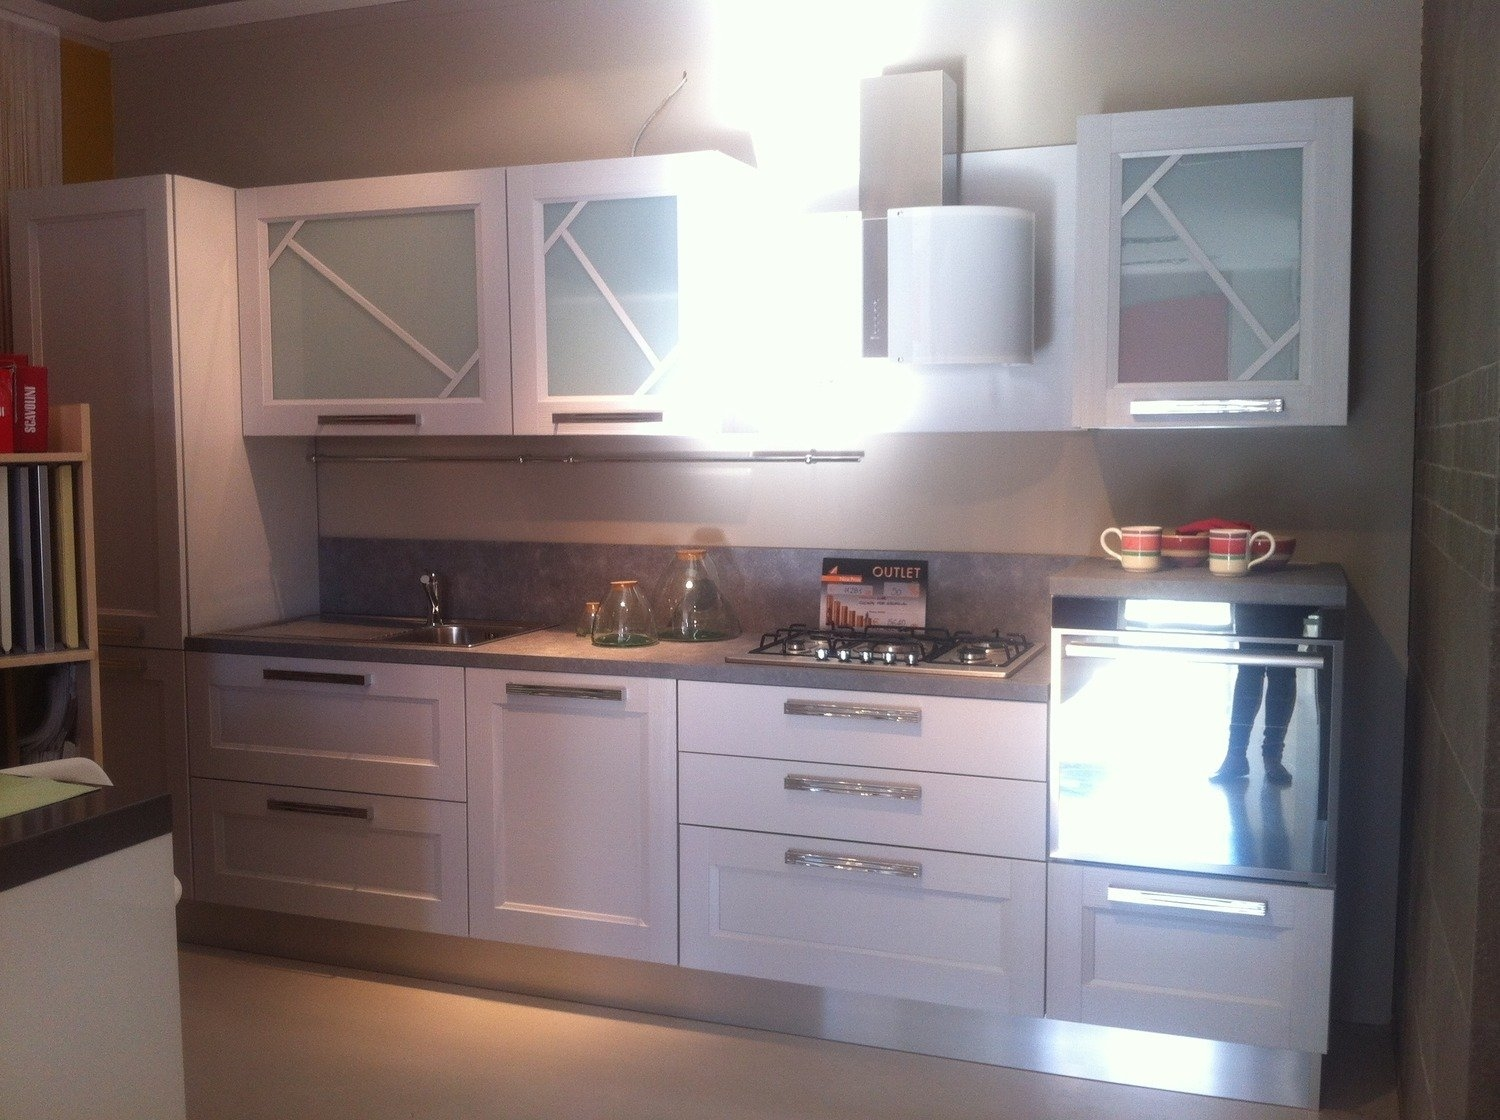 Awesome Cucine Export Lube Photos - Ideas & Design 2017 ...